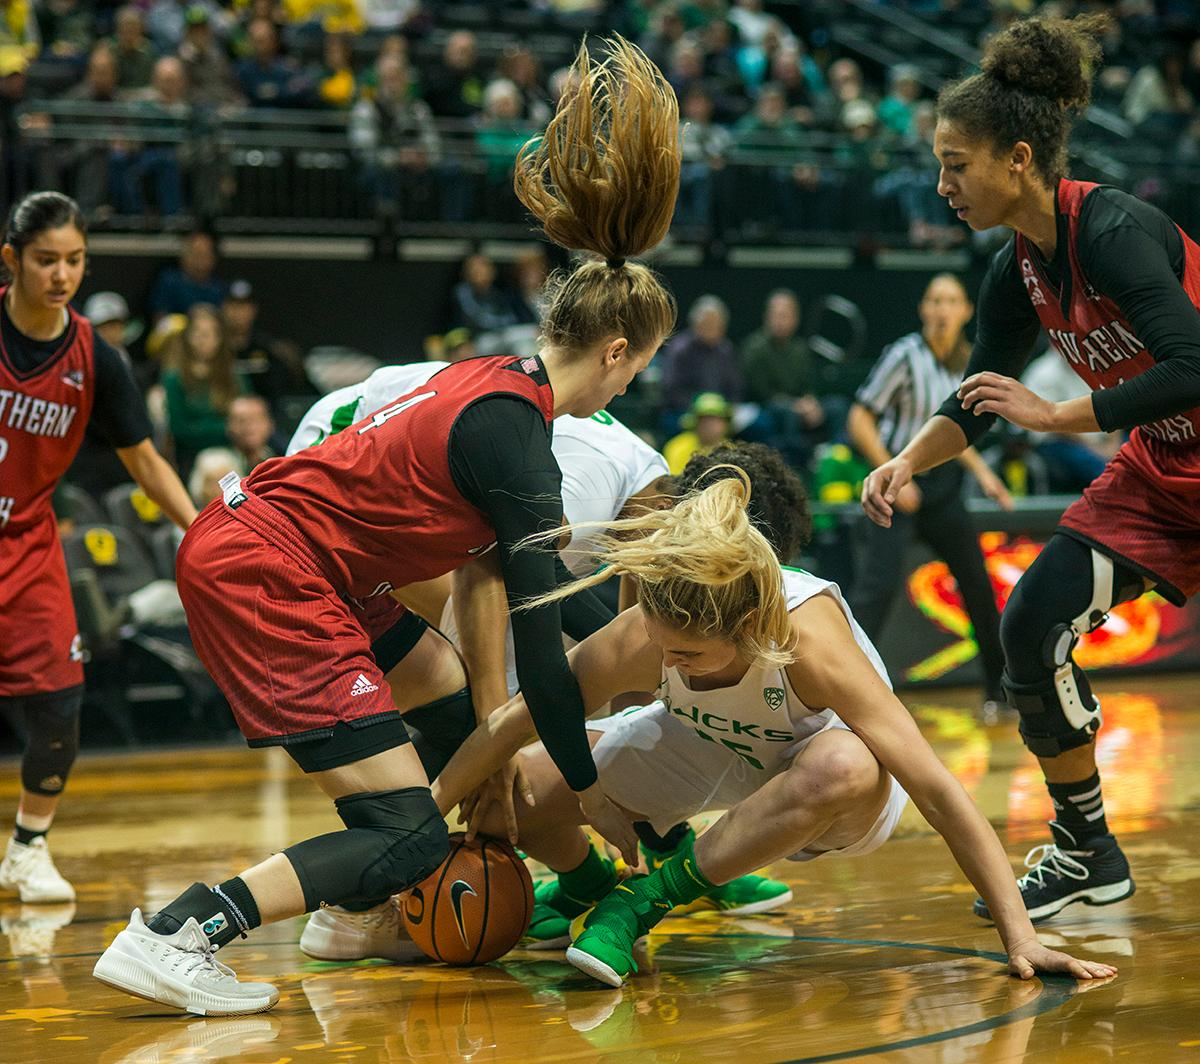 The Oregon Ducks and Southern Utah Thunderbirds struggle on the ground for a loose ball. The University of Oregon Ducks women basketball team defeated the Southern Utah Thunderbirds 98-38 in Matthew Knight Arena Saturday afternoon. The Ducks had four players in double-digits: Ruthy Hebard with 13; Mallory McGwire with 10; Lexi Bando with 17 which included four three-pointers; and Sabrina Ionescu with 16 points. The Ducks overwhelmed the Thunderbirds, shooting 50% in field goals to South Utah's 26.8%, 53.8% in three-pointers to 12.5%, and 85.7% in free throws to 50%. The Ducks, with an overall record of 8-1, and coming into this game ranked 9th, will play their next home game against Ole Miss on December 17. Photo by Rhianna Gelhart, Oregon News Lab